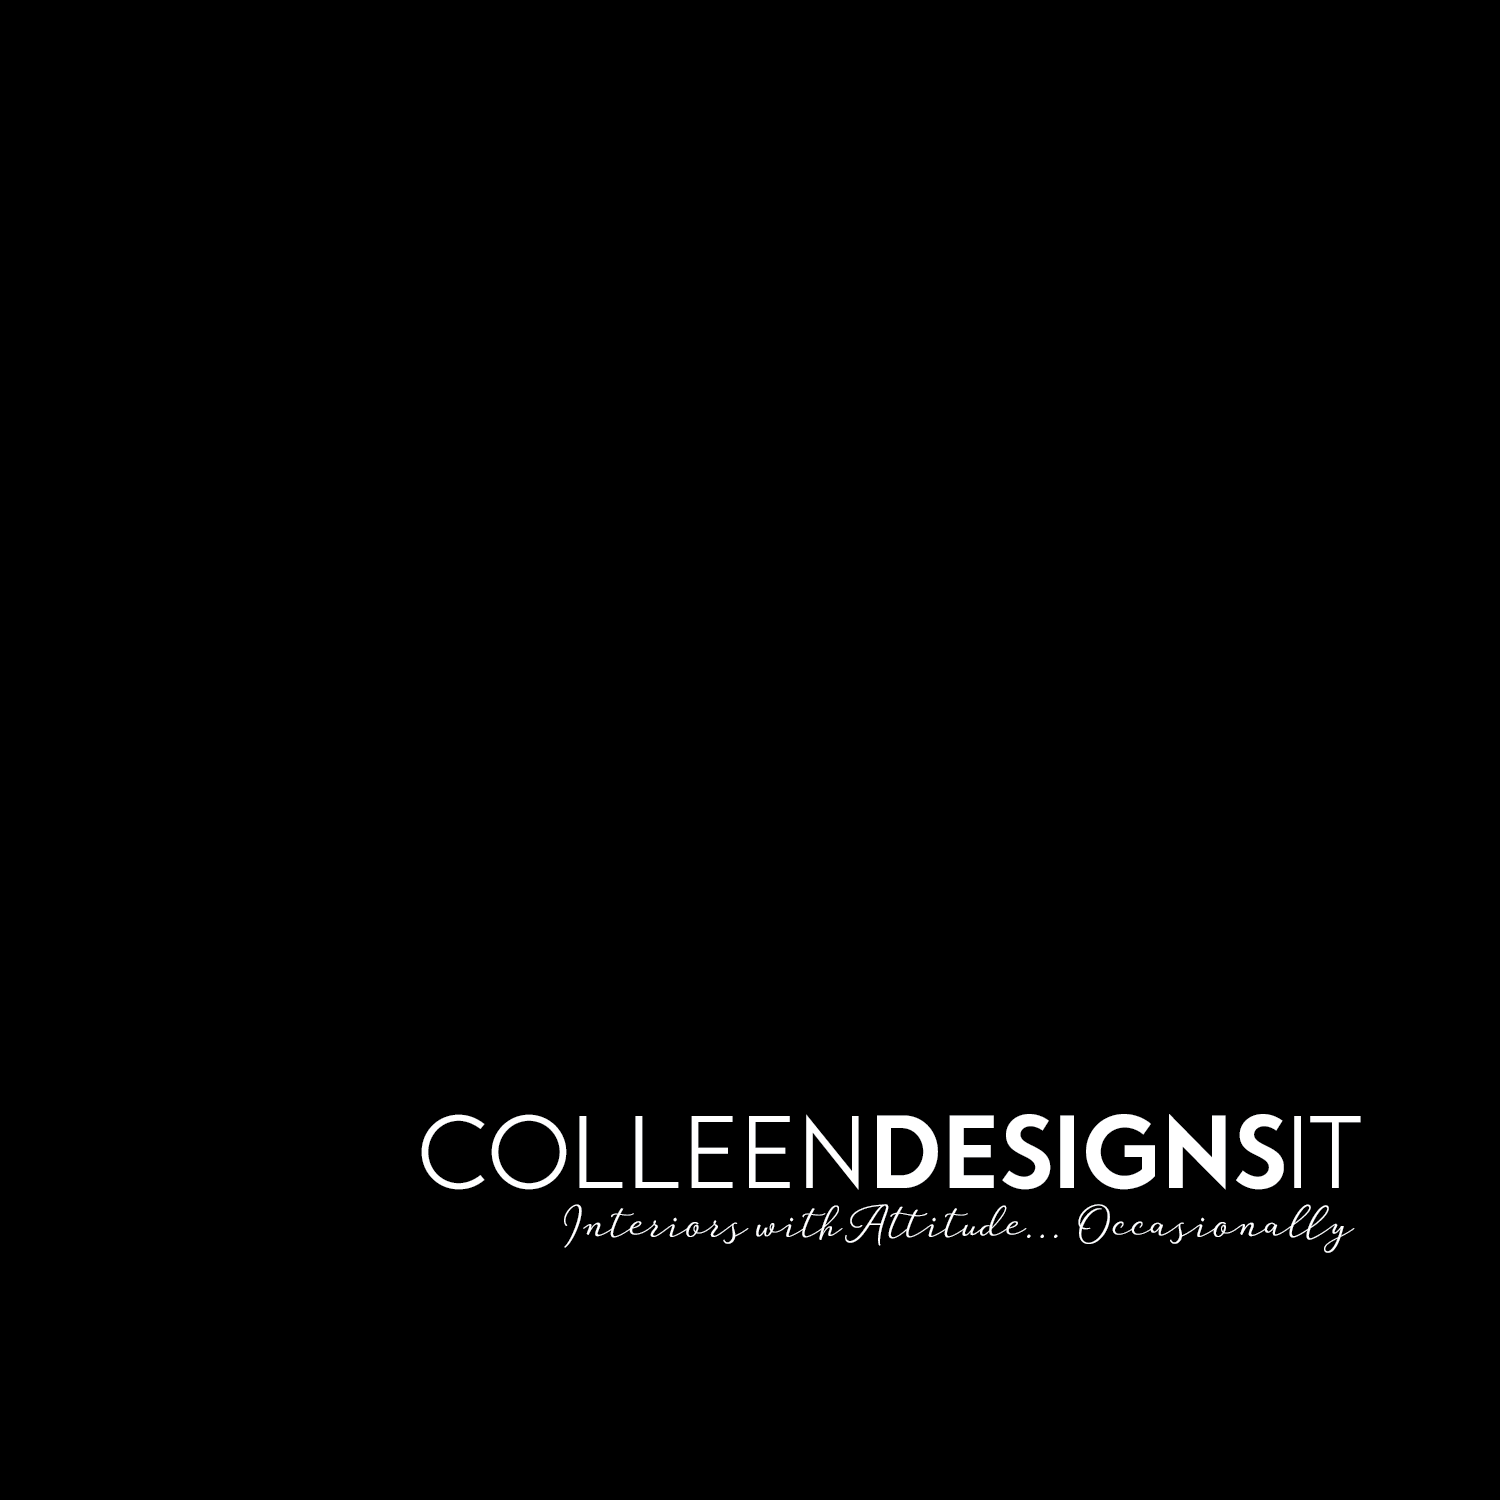 Image showing correct use of Colleen Designs It logo on white square background.